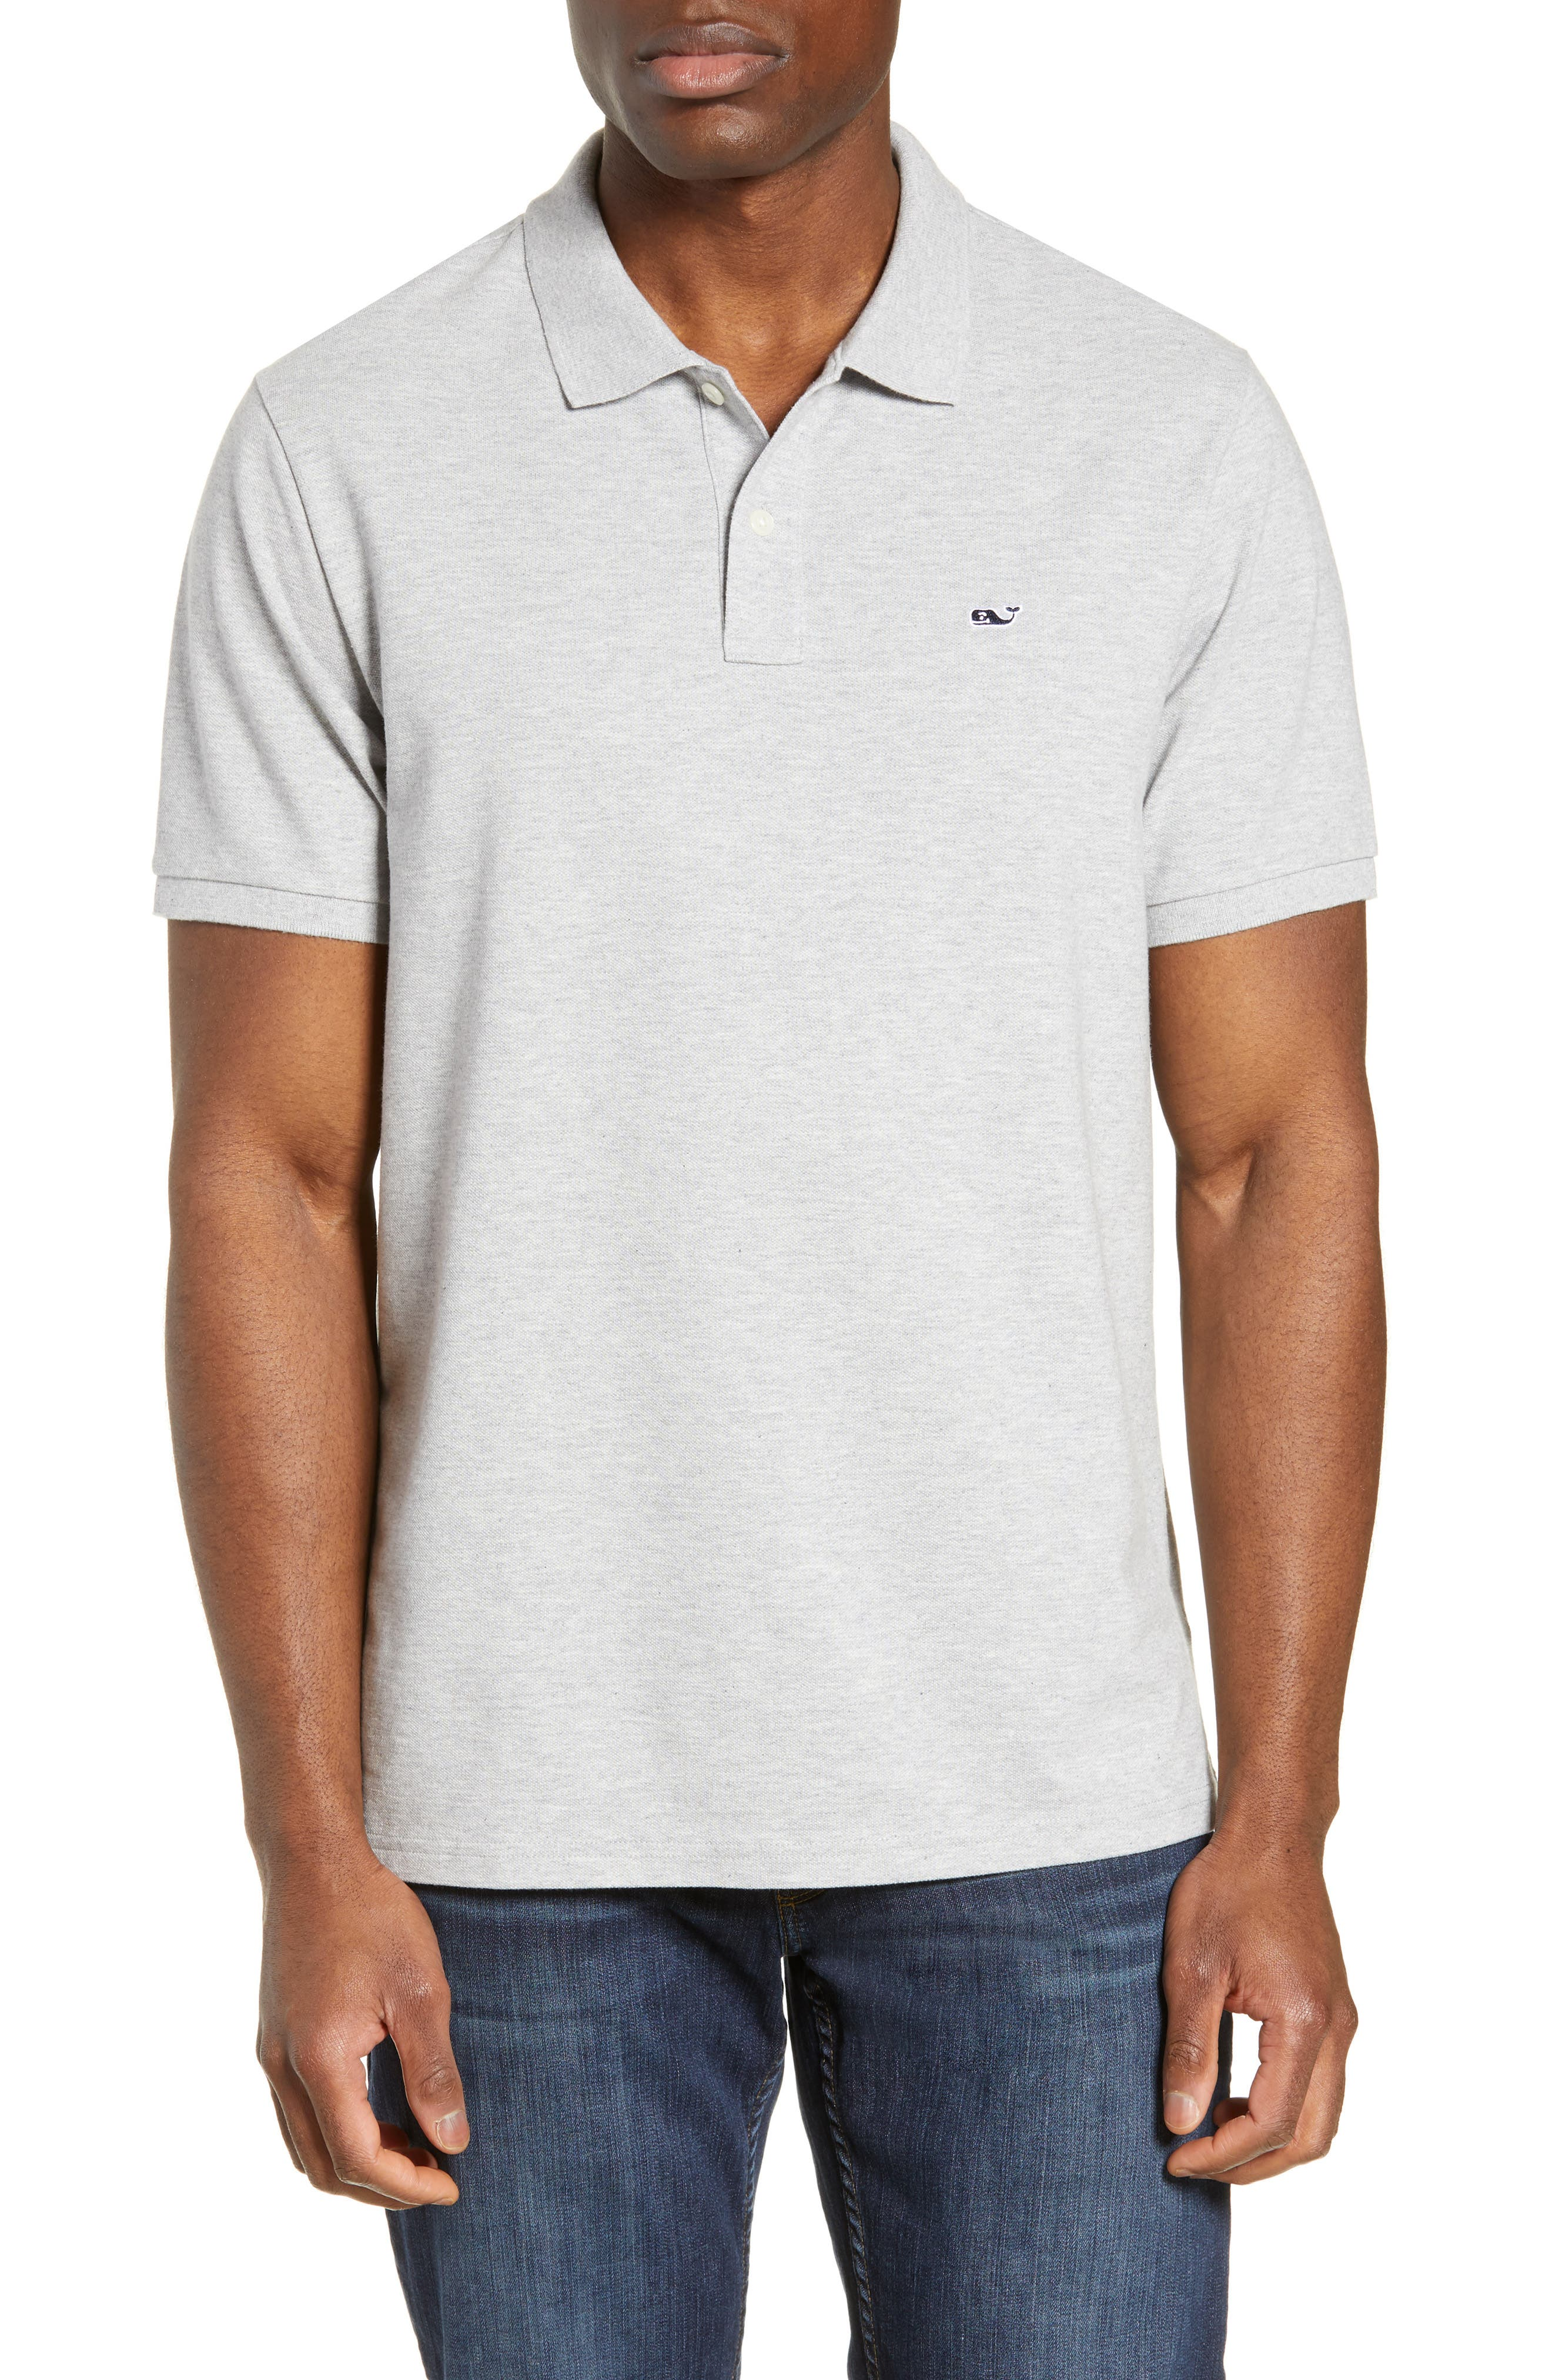 VINEYARD VINES, Regular Fit Stretch Piqué Polo, Main thumbnail 1, color, LIGHT GRAY HEATHER